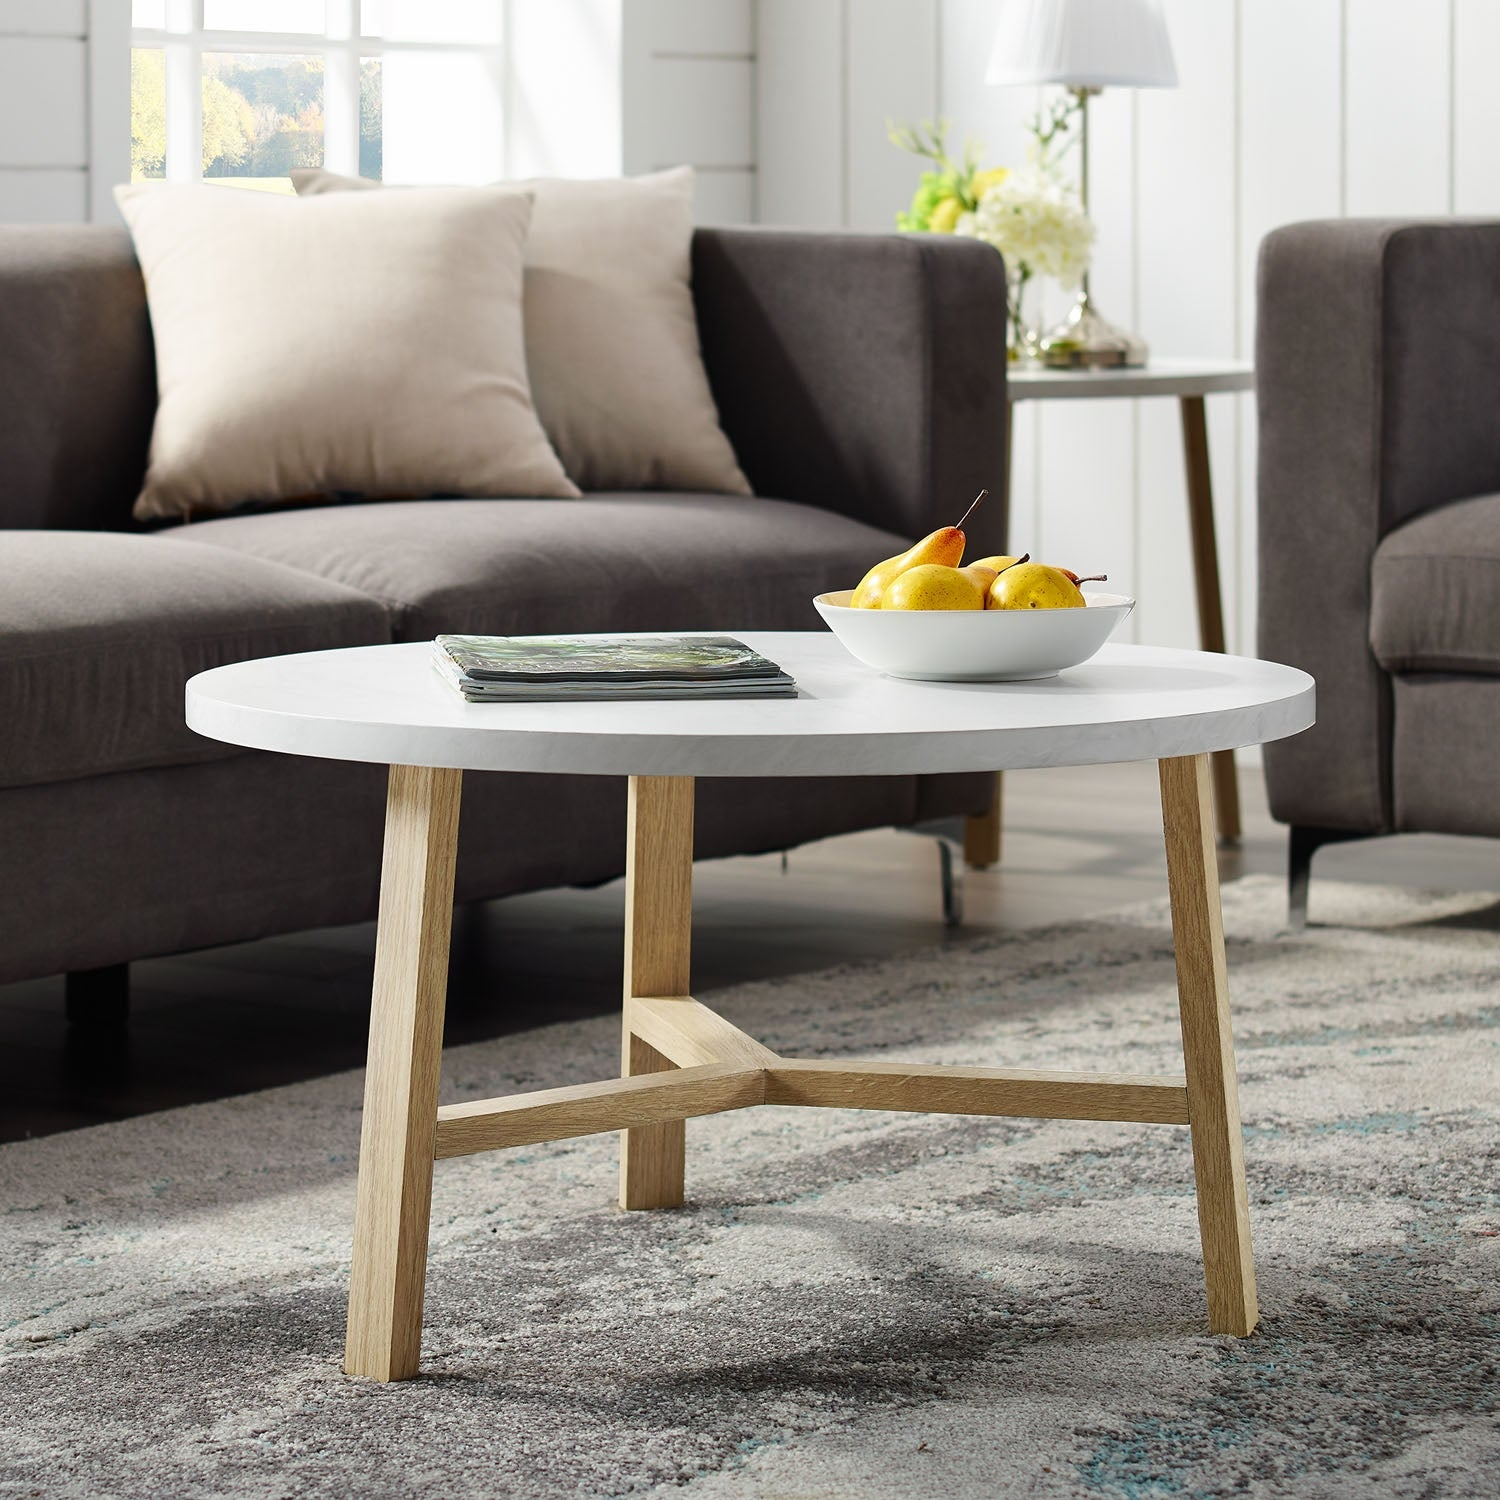 Shop Offex 30 Mid Century Round Coffee Table In 2 Tone Finish